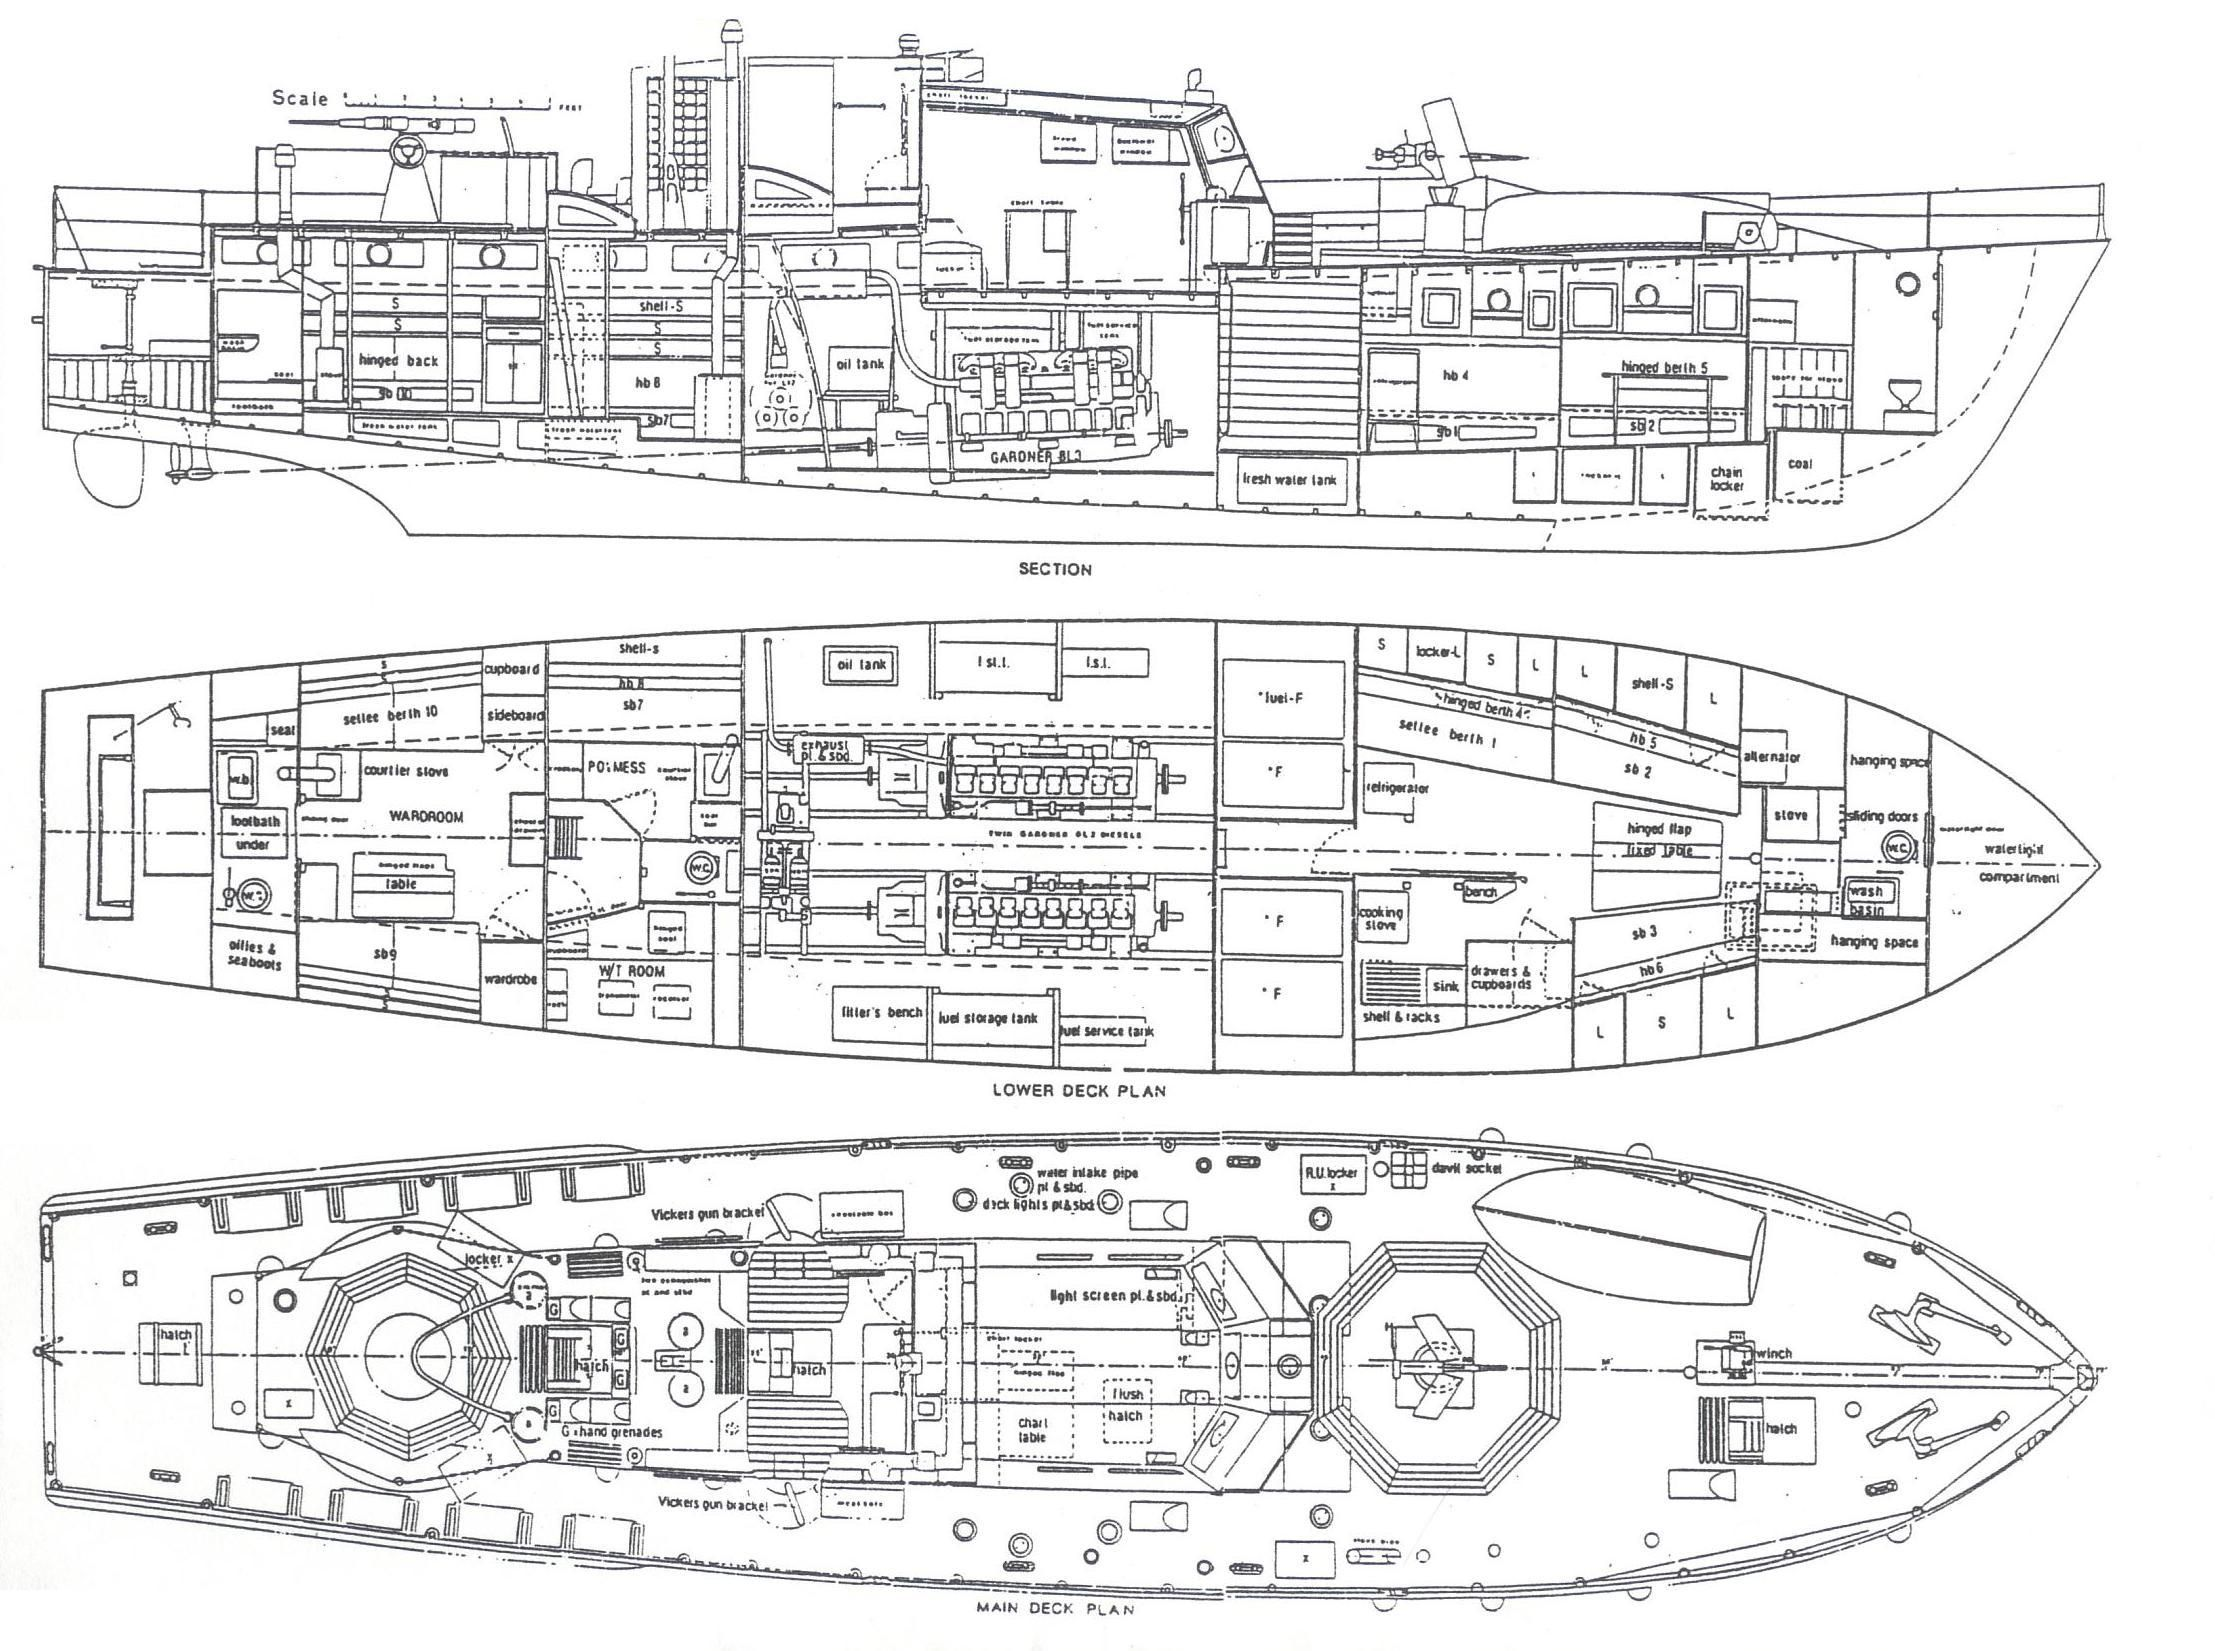 Ww2ships Hdml 01plans